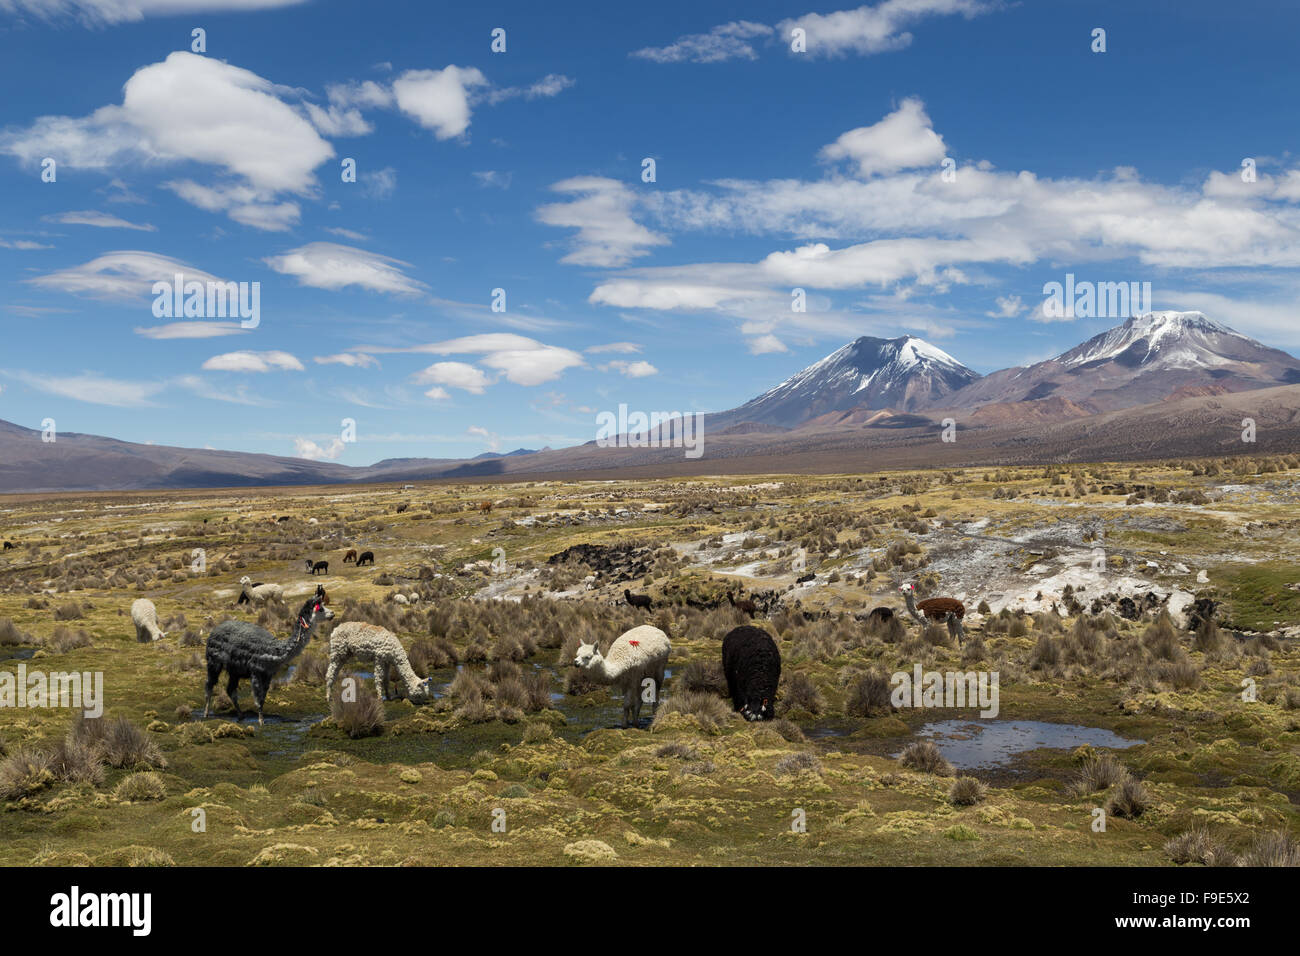 Photograph of a group of lamas and alpacas in Sajama National Park, Bolivia. - Stock Image